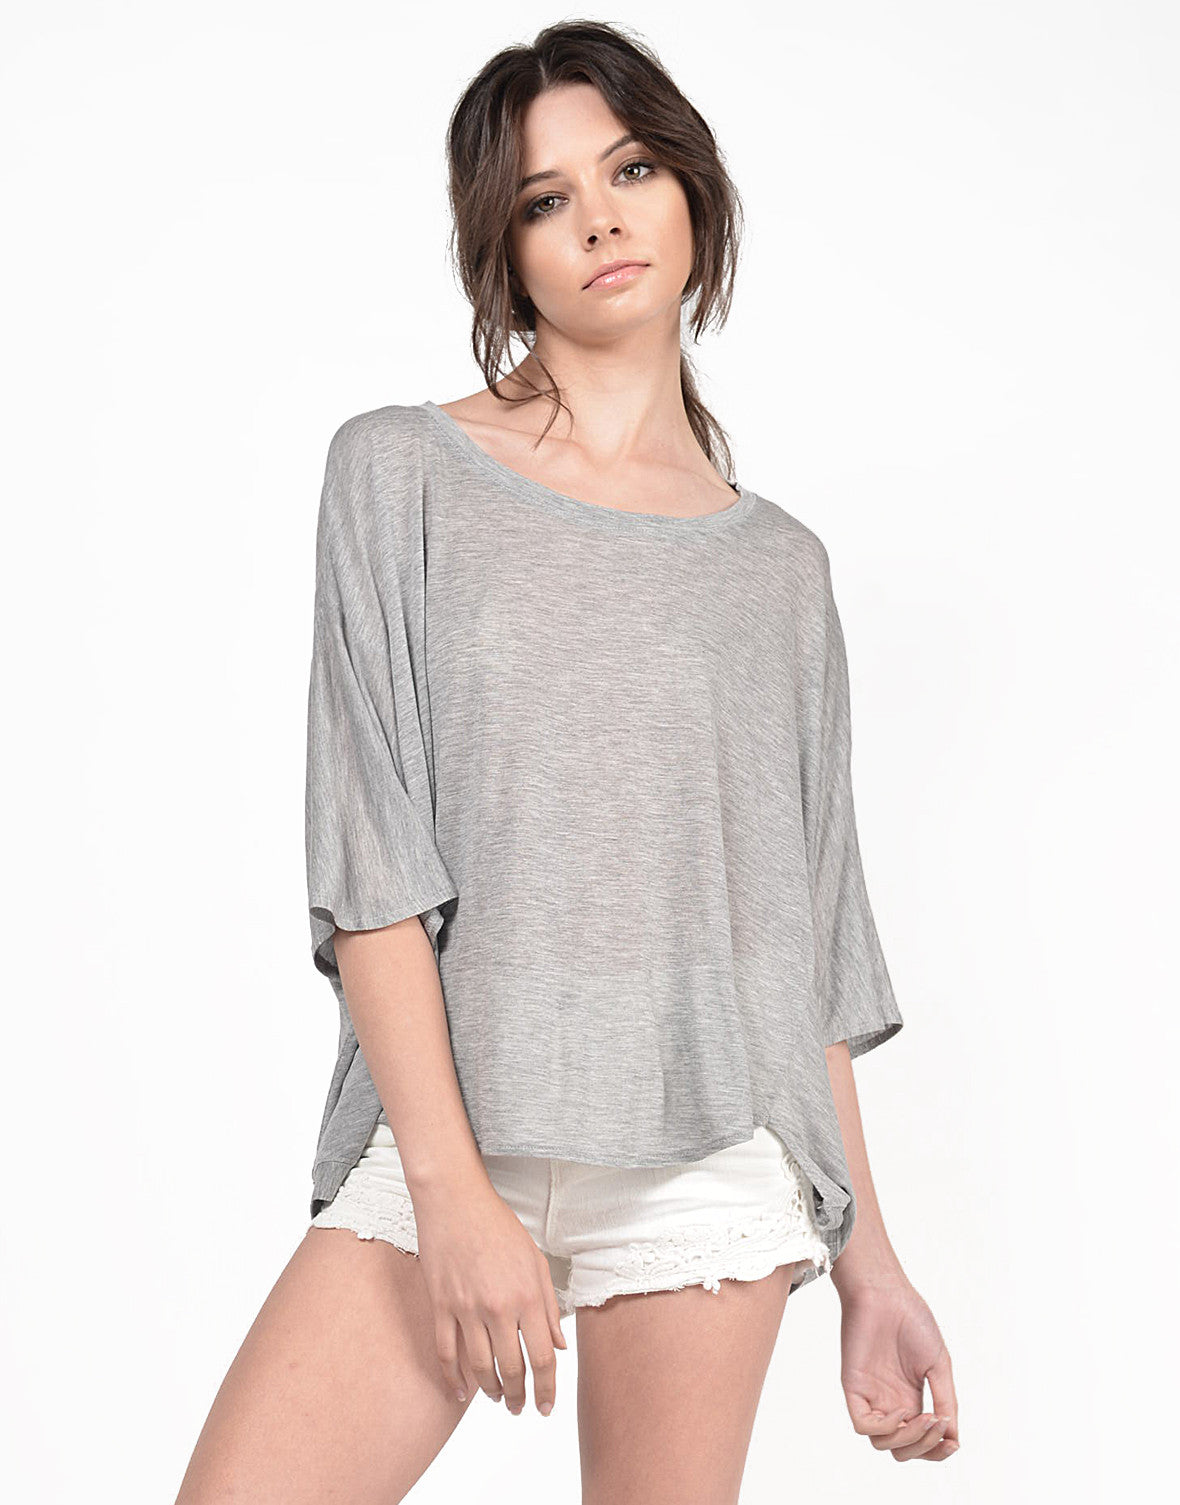 Front View of Hi-Low Soft Tee